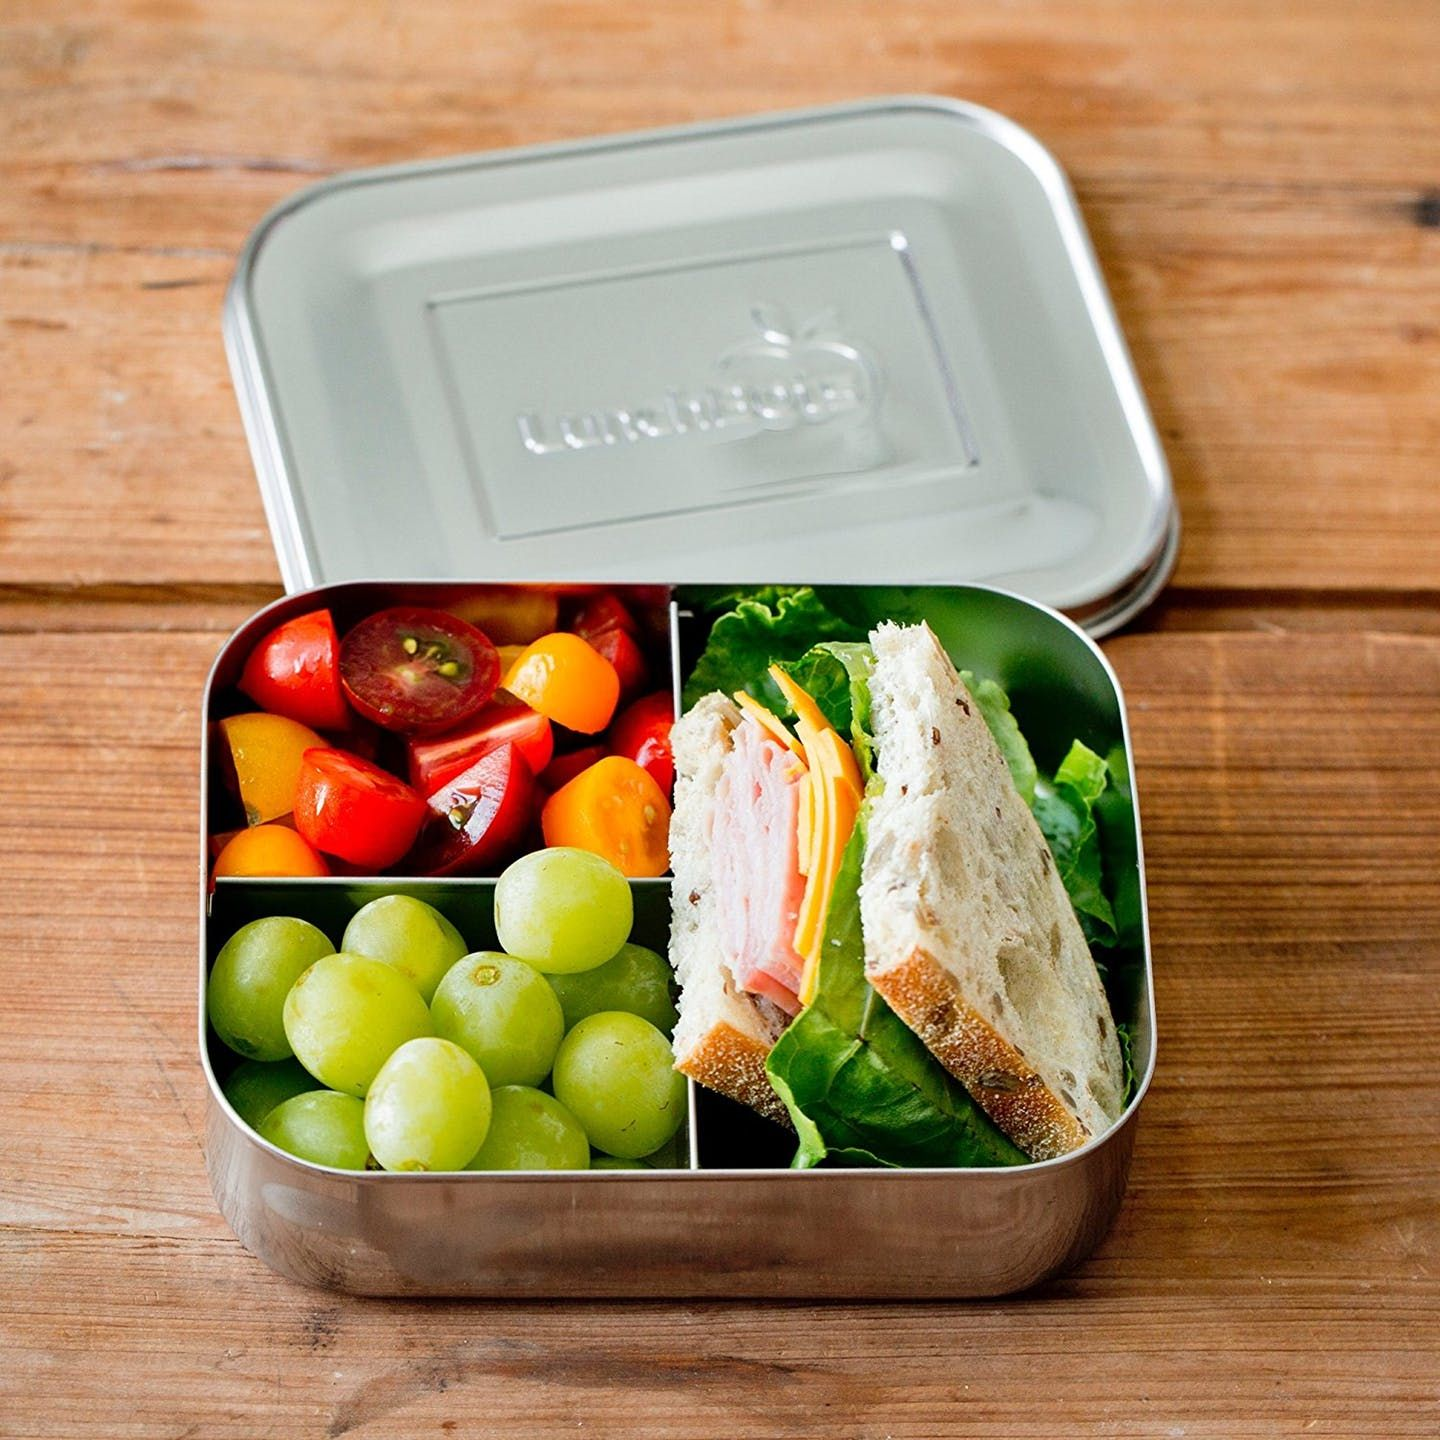 51 Grown Up Versions Of The Lunch Box With Images Office Meals